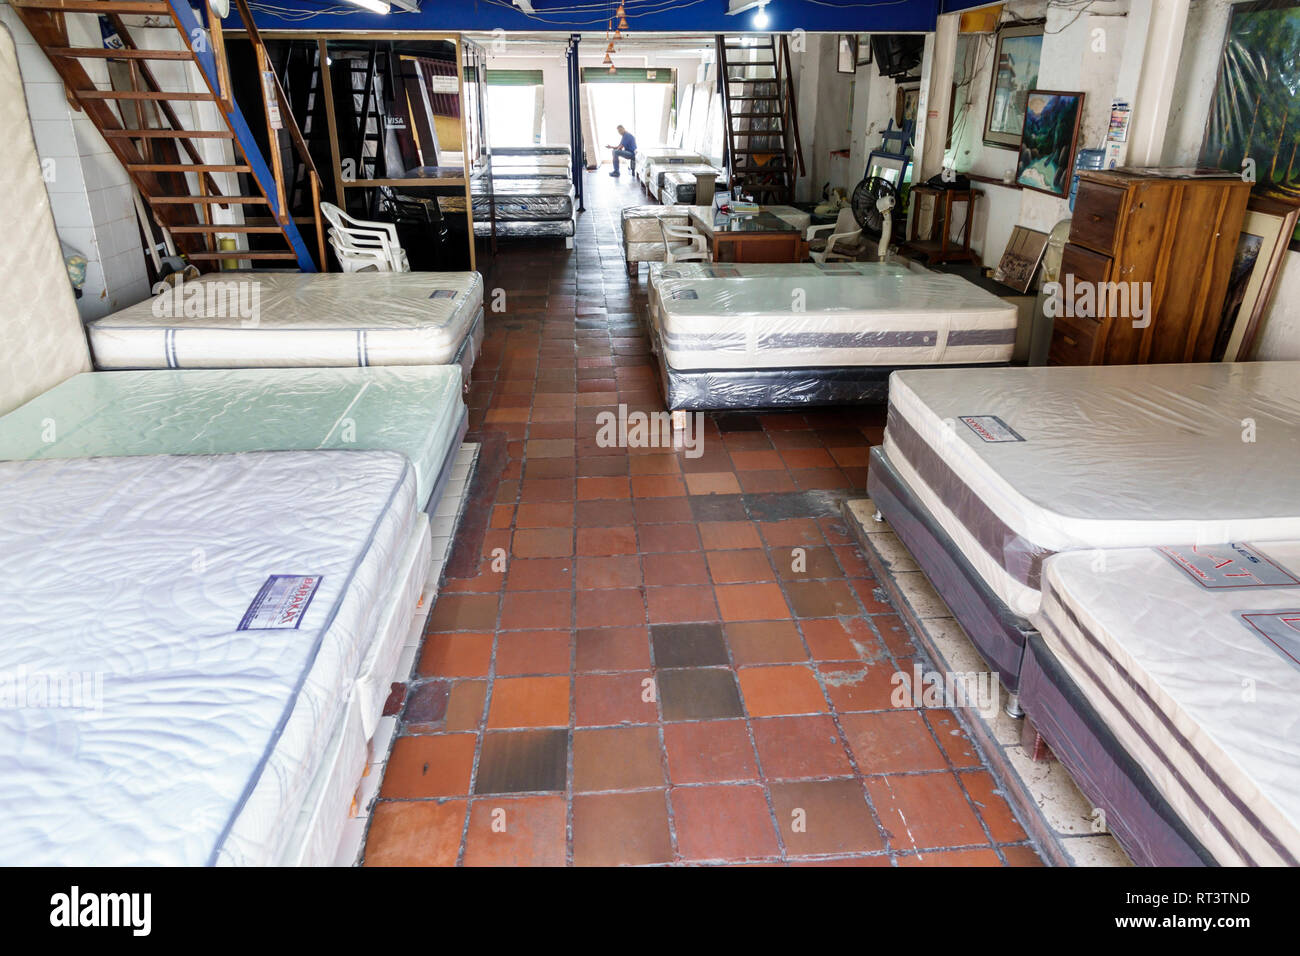 Cartagena Colombia Old Walled City Center centre Getsemani inside business display sale new mattresses beds store - Stock Image